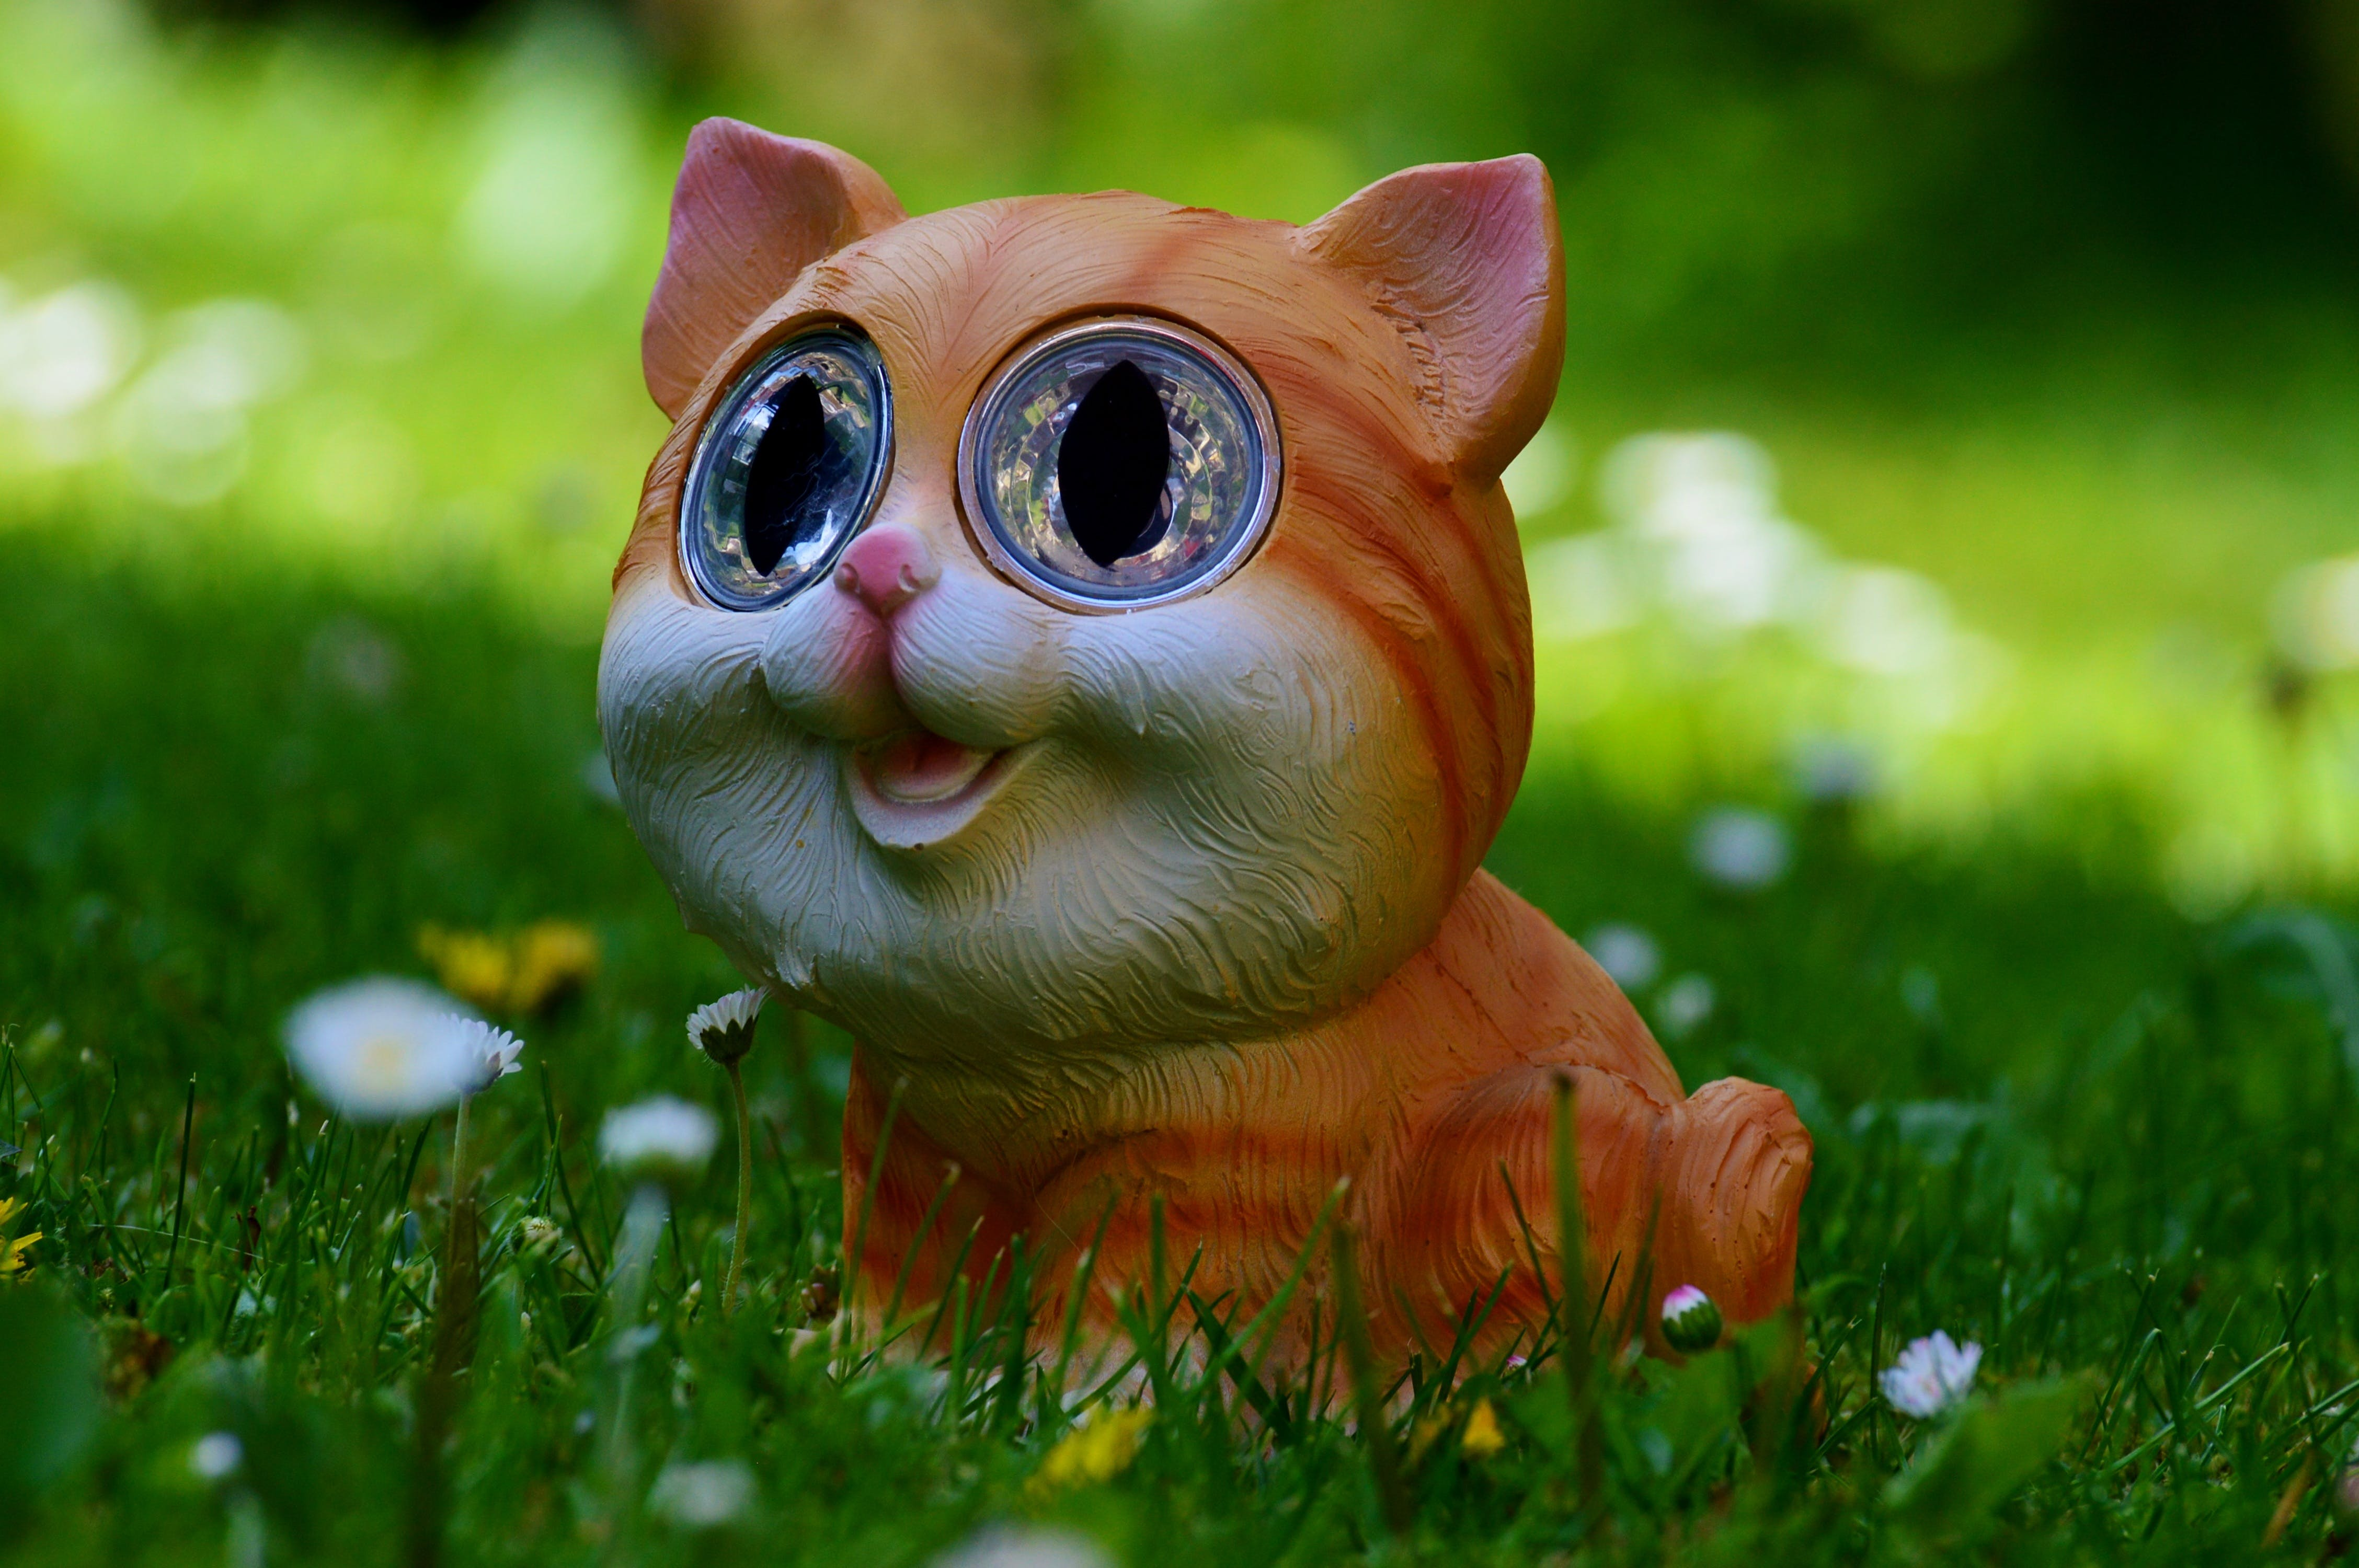 Yellow and Orange Tabby Kitten Figurine on Green Grass Plant